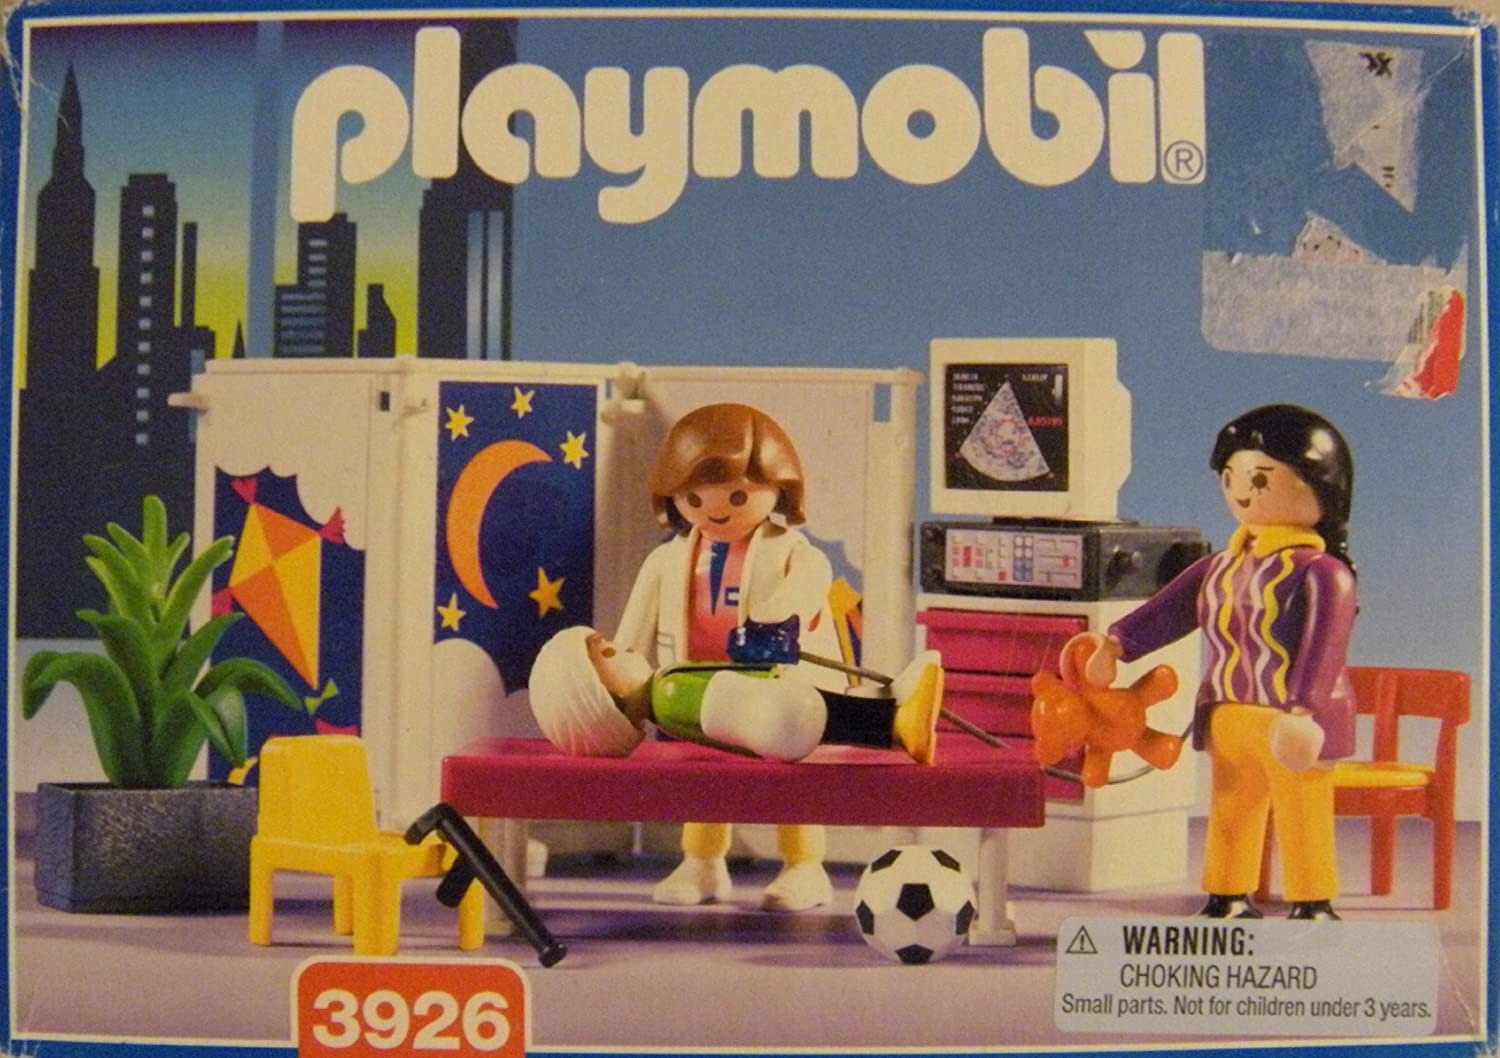 Playmobil rescue pediatrician 3926 (Japan import   The package and the manual are written in Japanese)